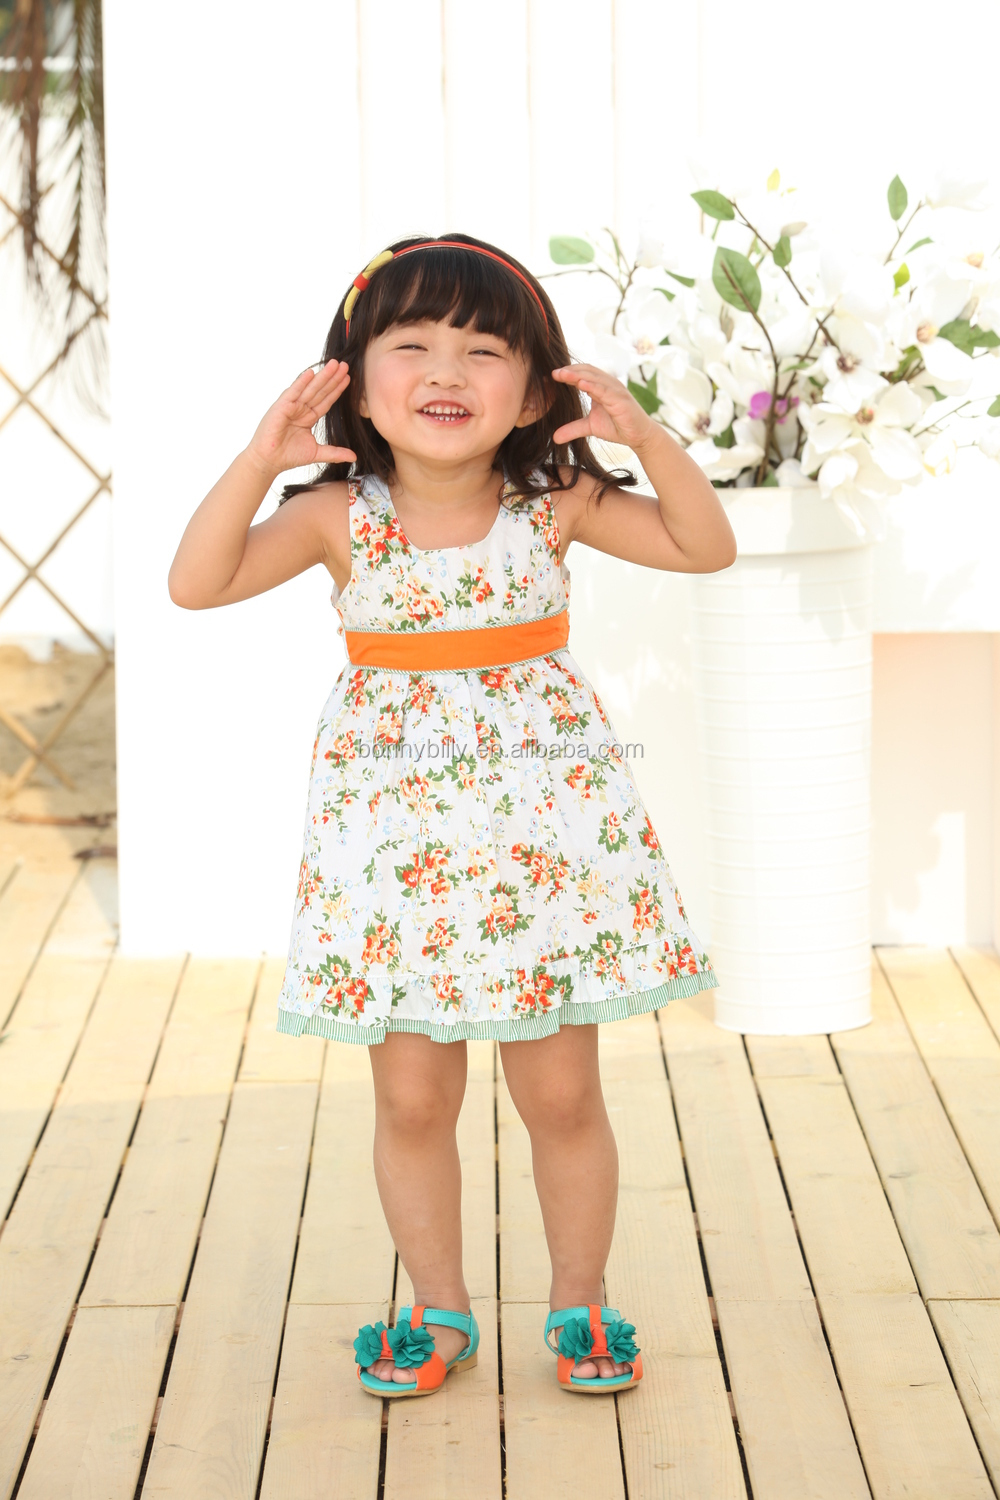 New Arrival New Born 1-5 Years Old Baby Girl Clothes,Girl ...